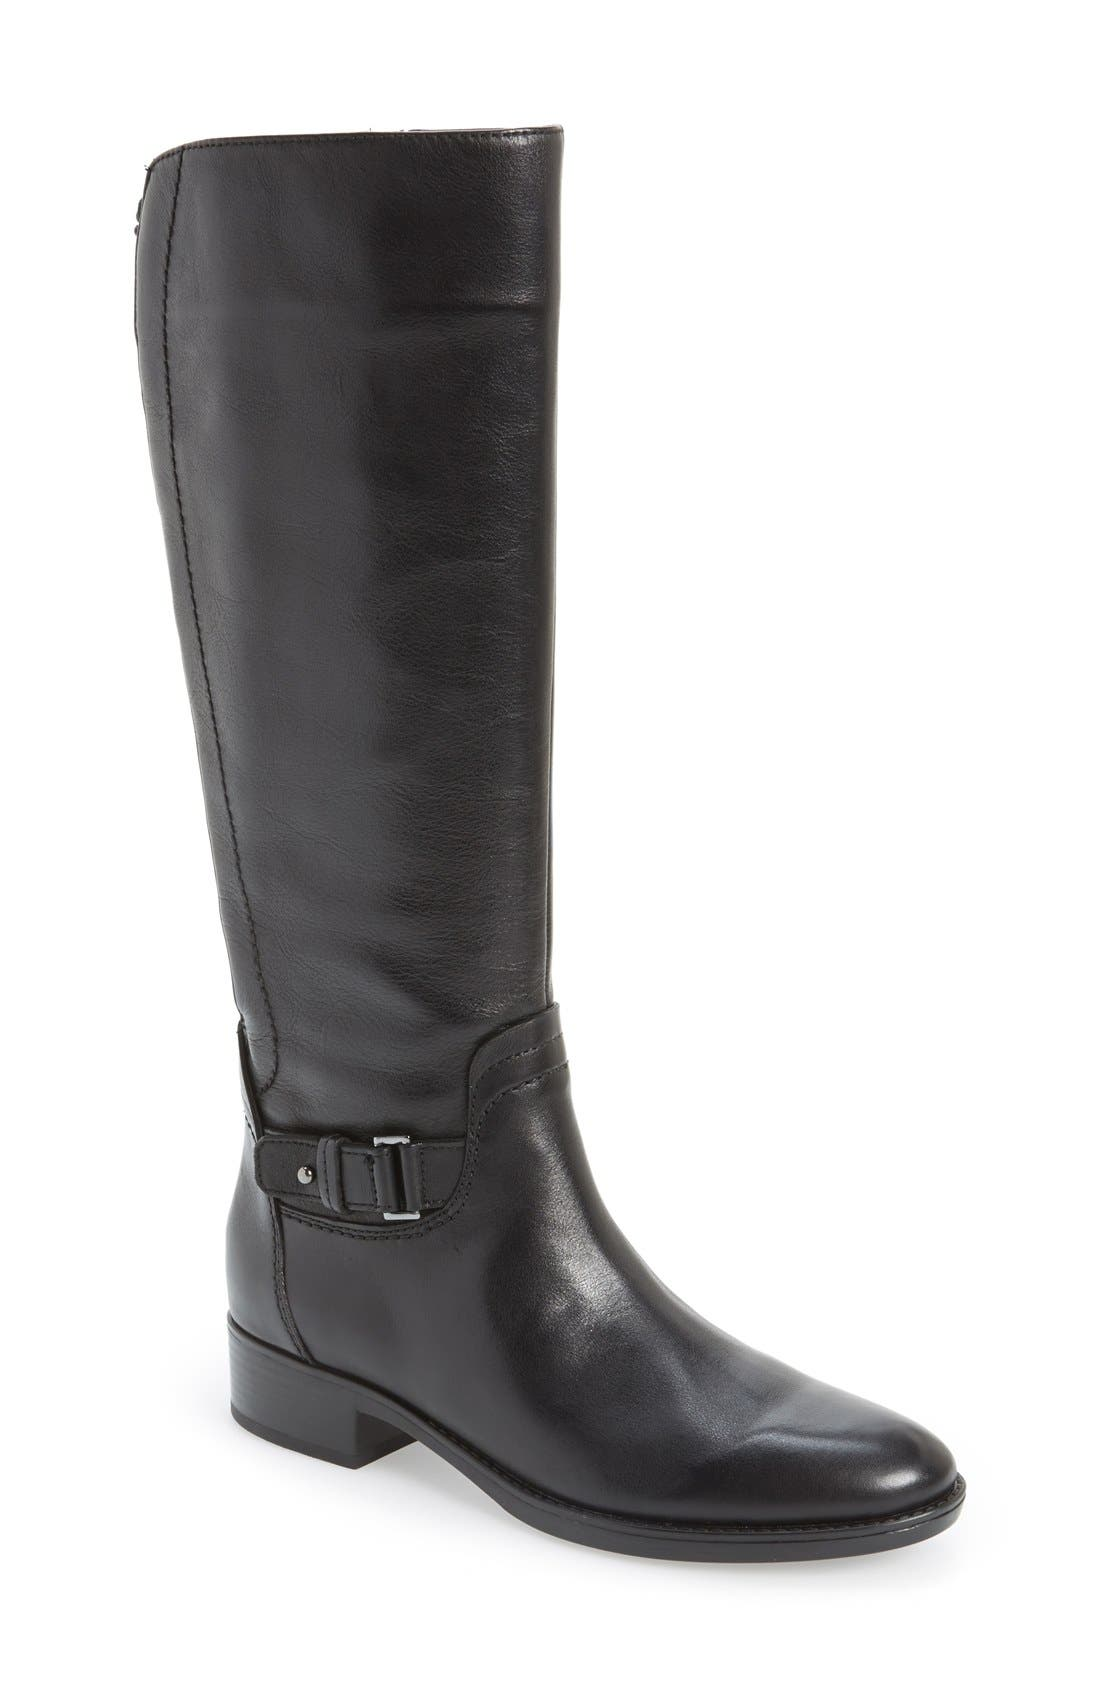 Alternate Image 1 Selected - Geox 'Felicity' Adjustable Shaft Tall Riding Boot (Women)